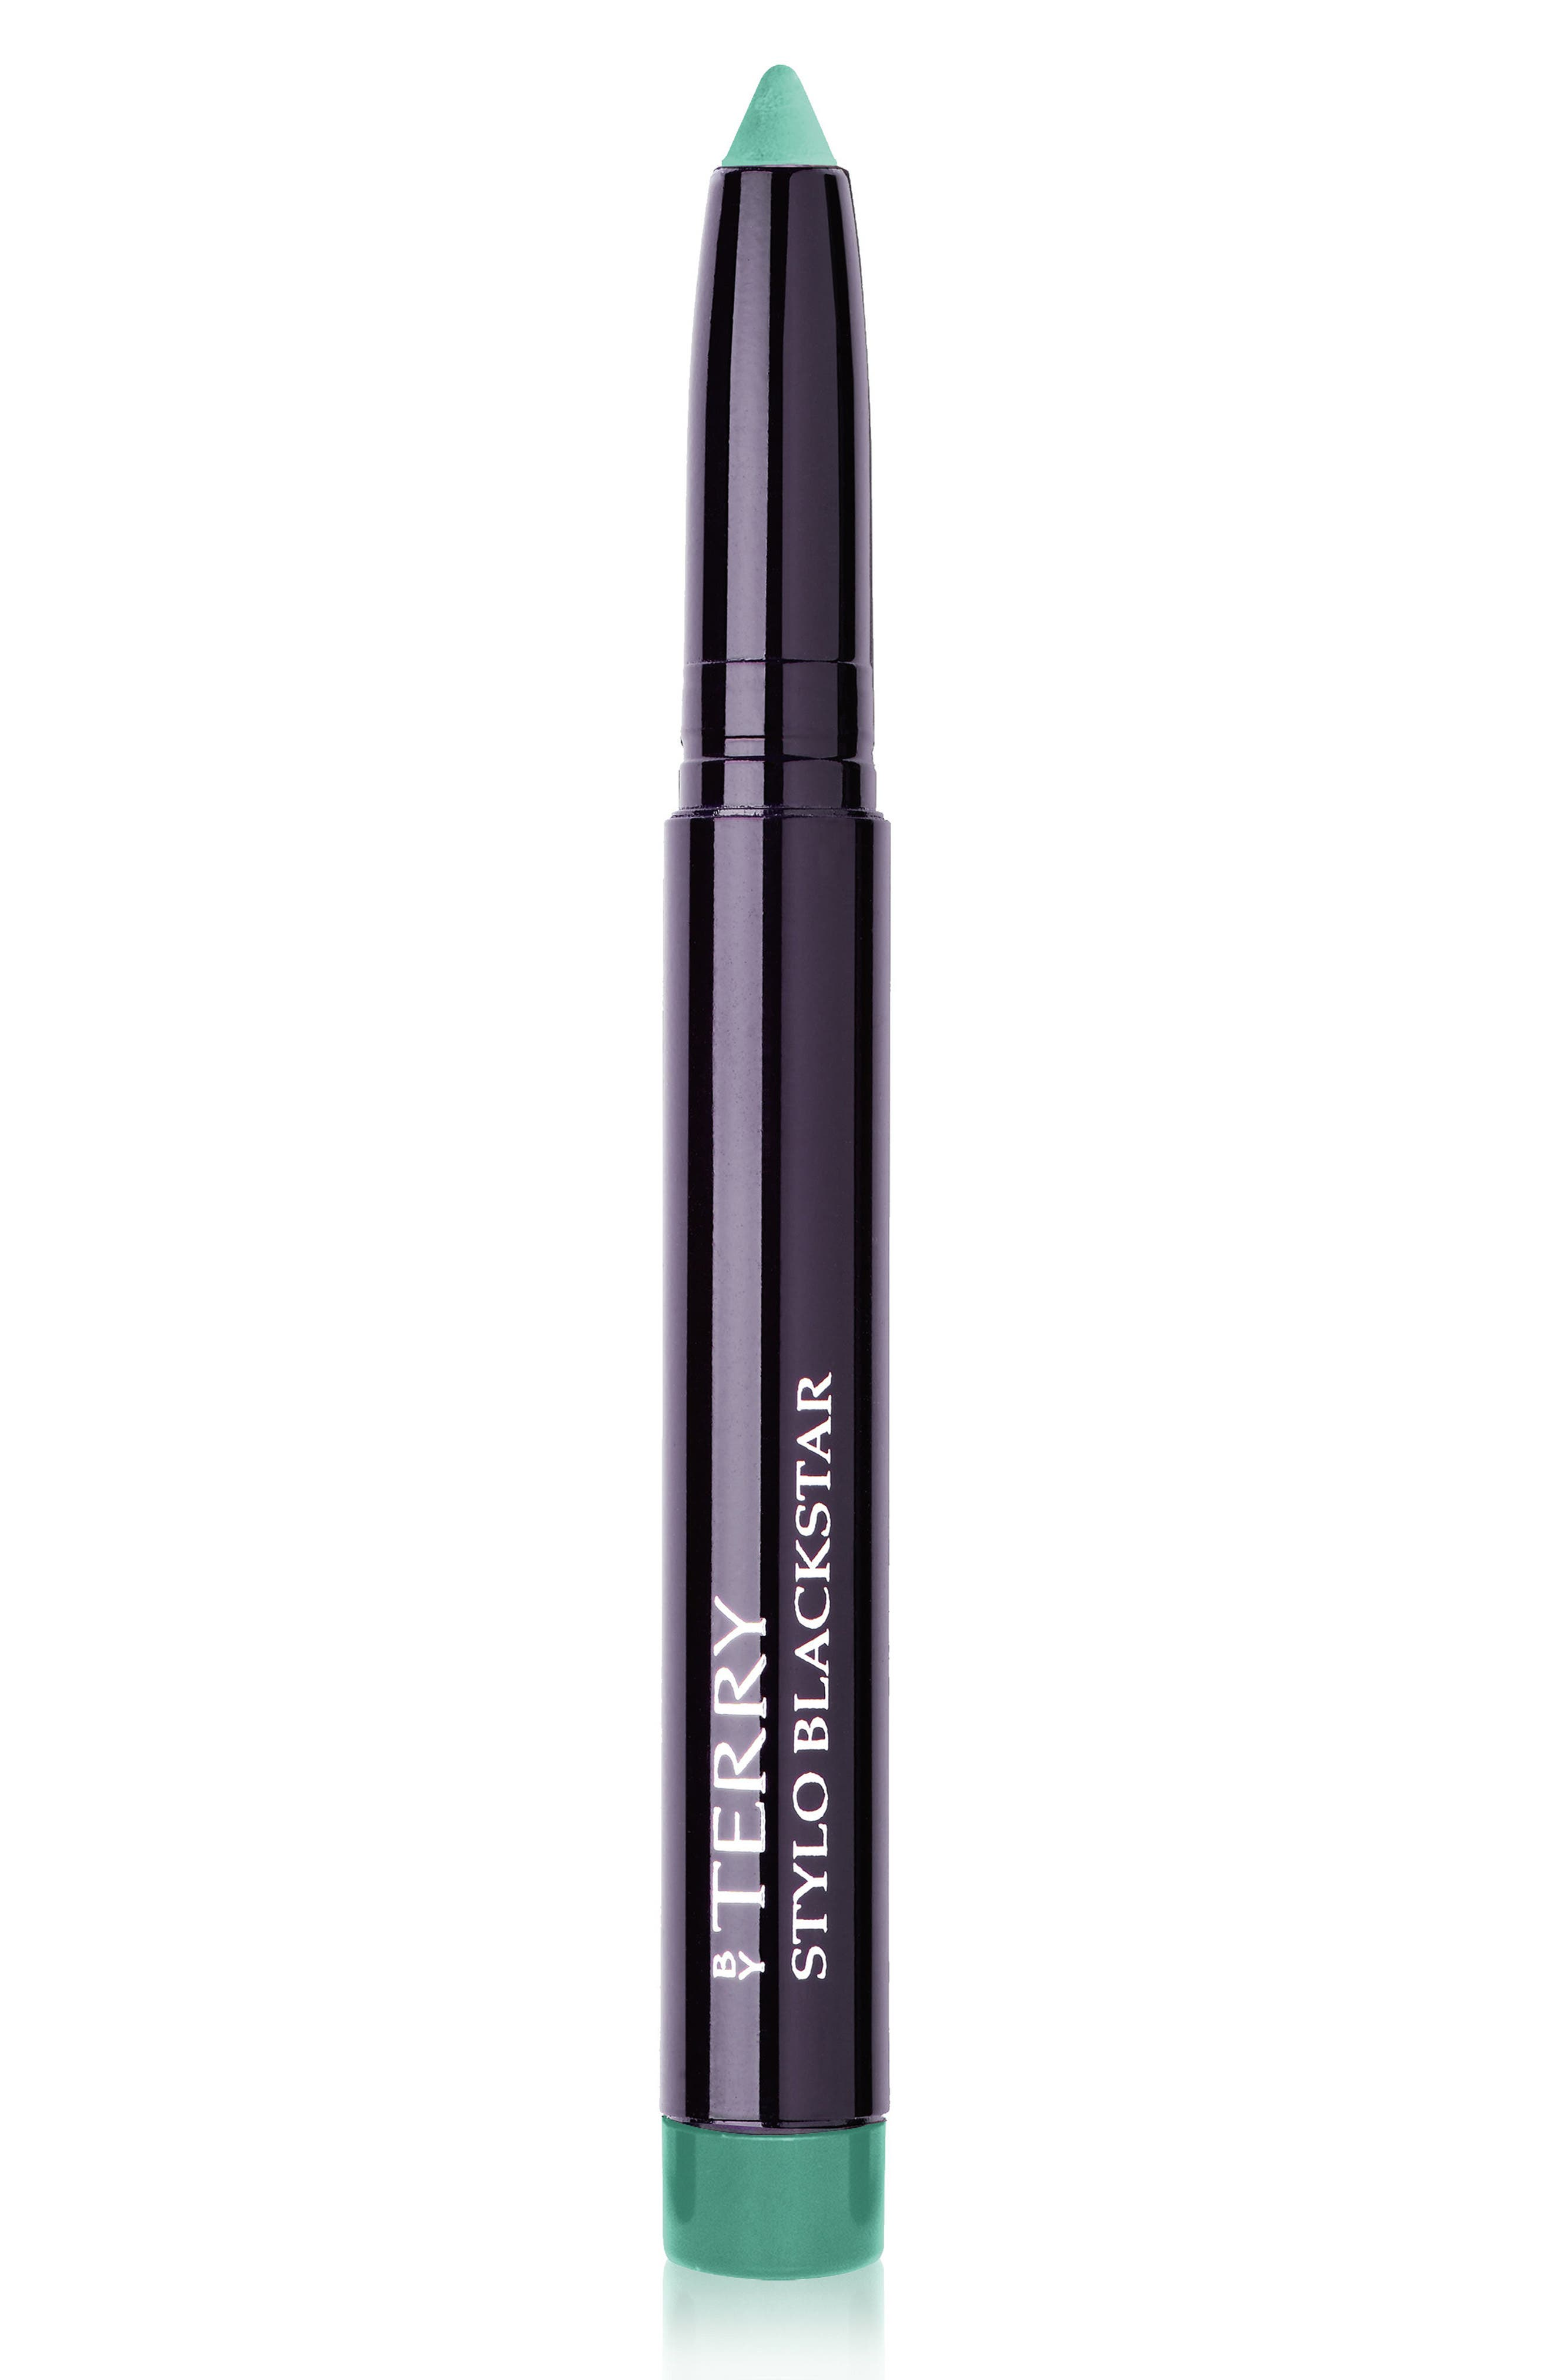 Main Image - SPACE.NK.apothecary By Terry Stylo Blackstar Waterproof 3-in-1 Eye Pencil